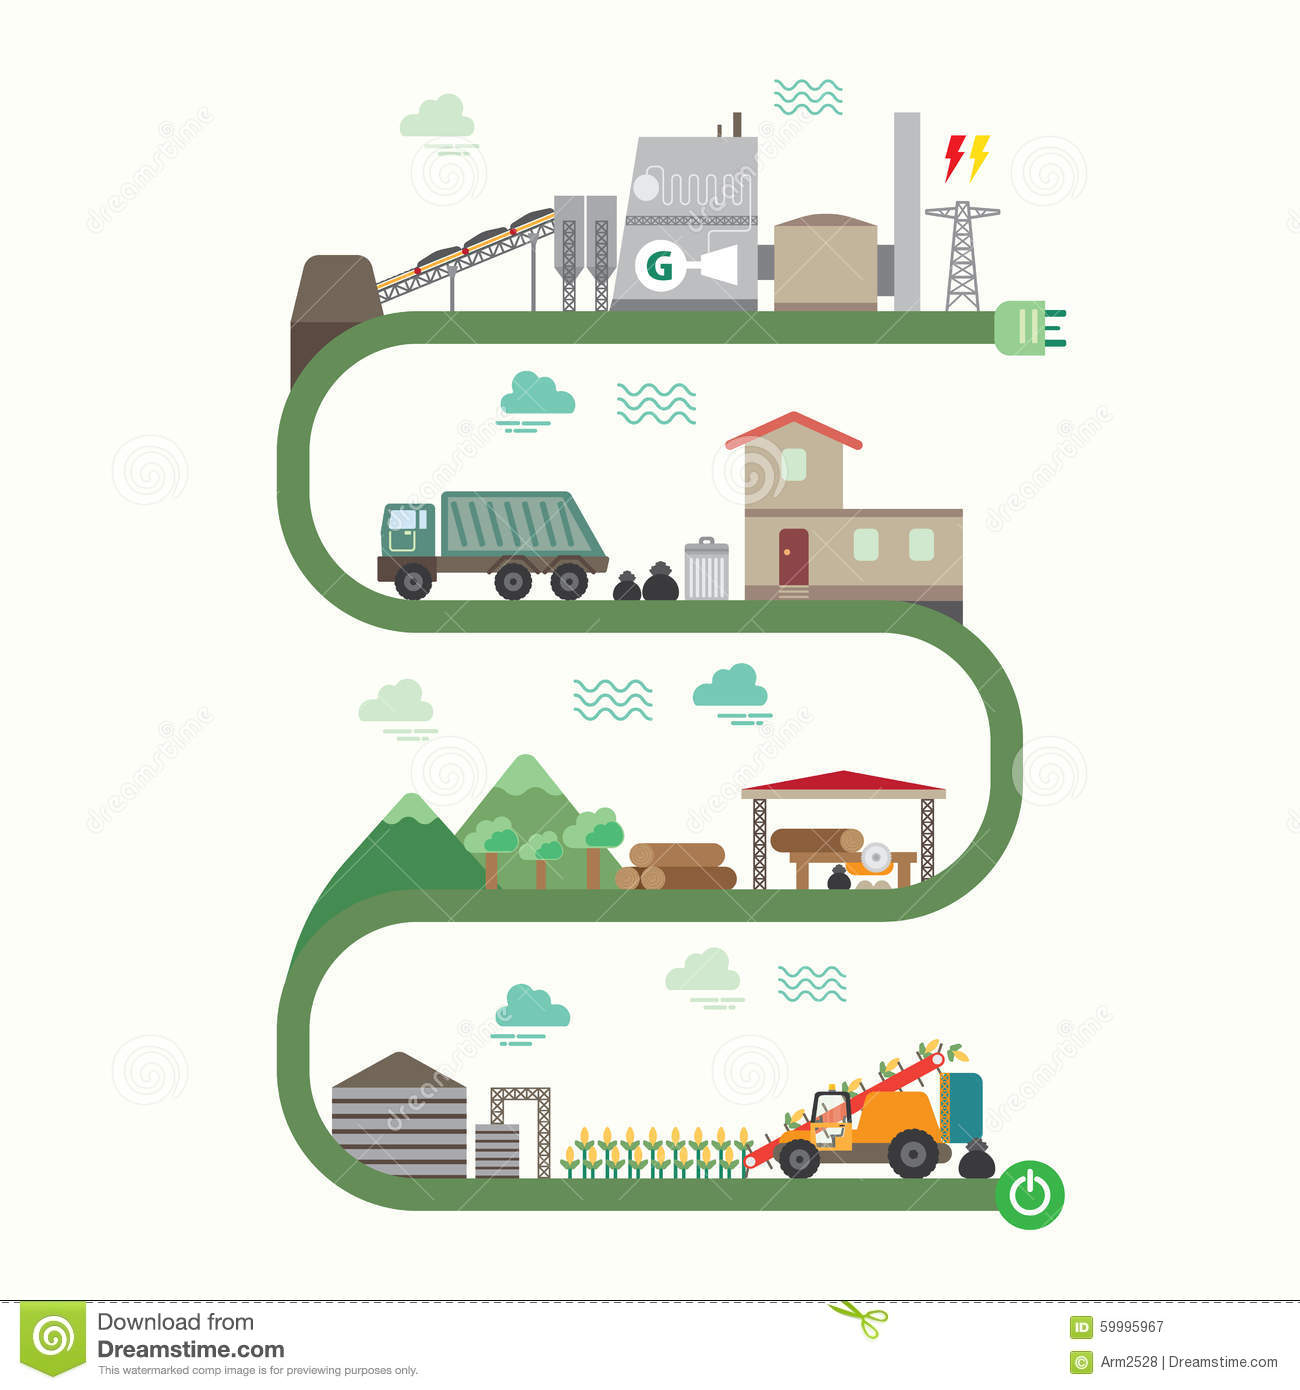 Royalty Free Stock Image Vector Cargo Semi Truck Image21173086 likewise Stock Illustration Biomass Energy Simple Line Graphic Image59995967 likewise Bluetooth Speakers Troubleshooting 867513 in addition Car Audio Capacitors Vs Power Cells as well . on the big 3 car audio diagram